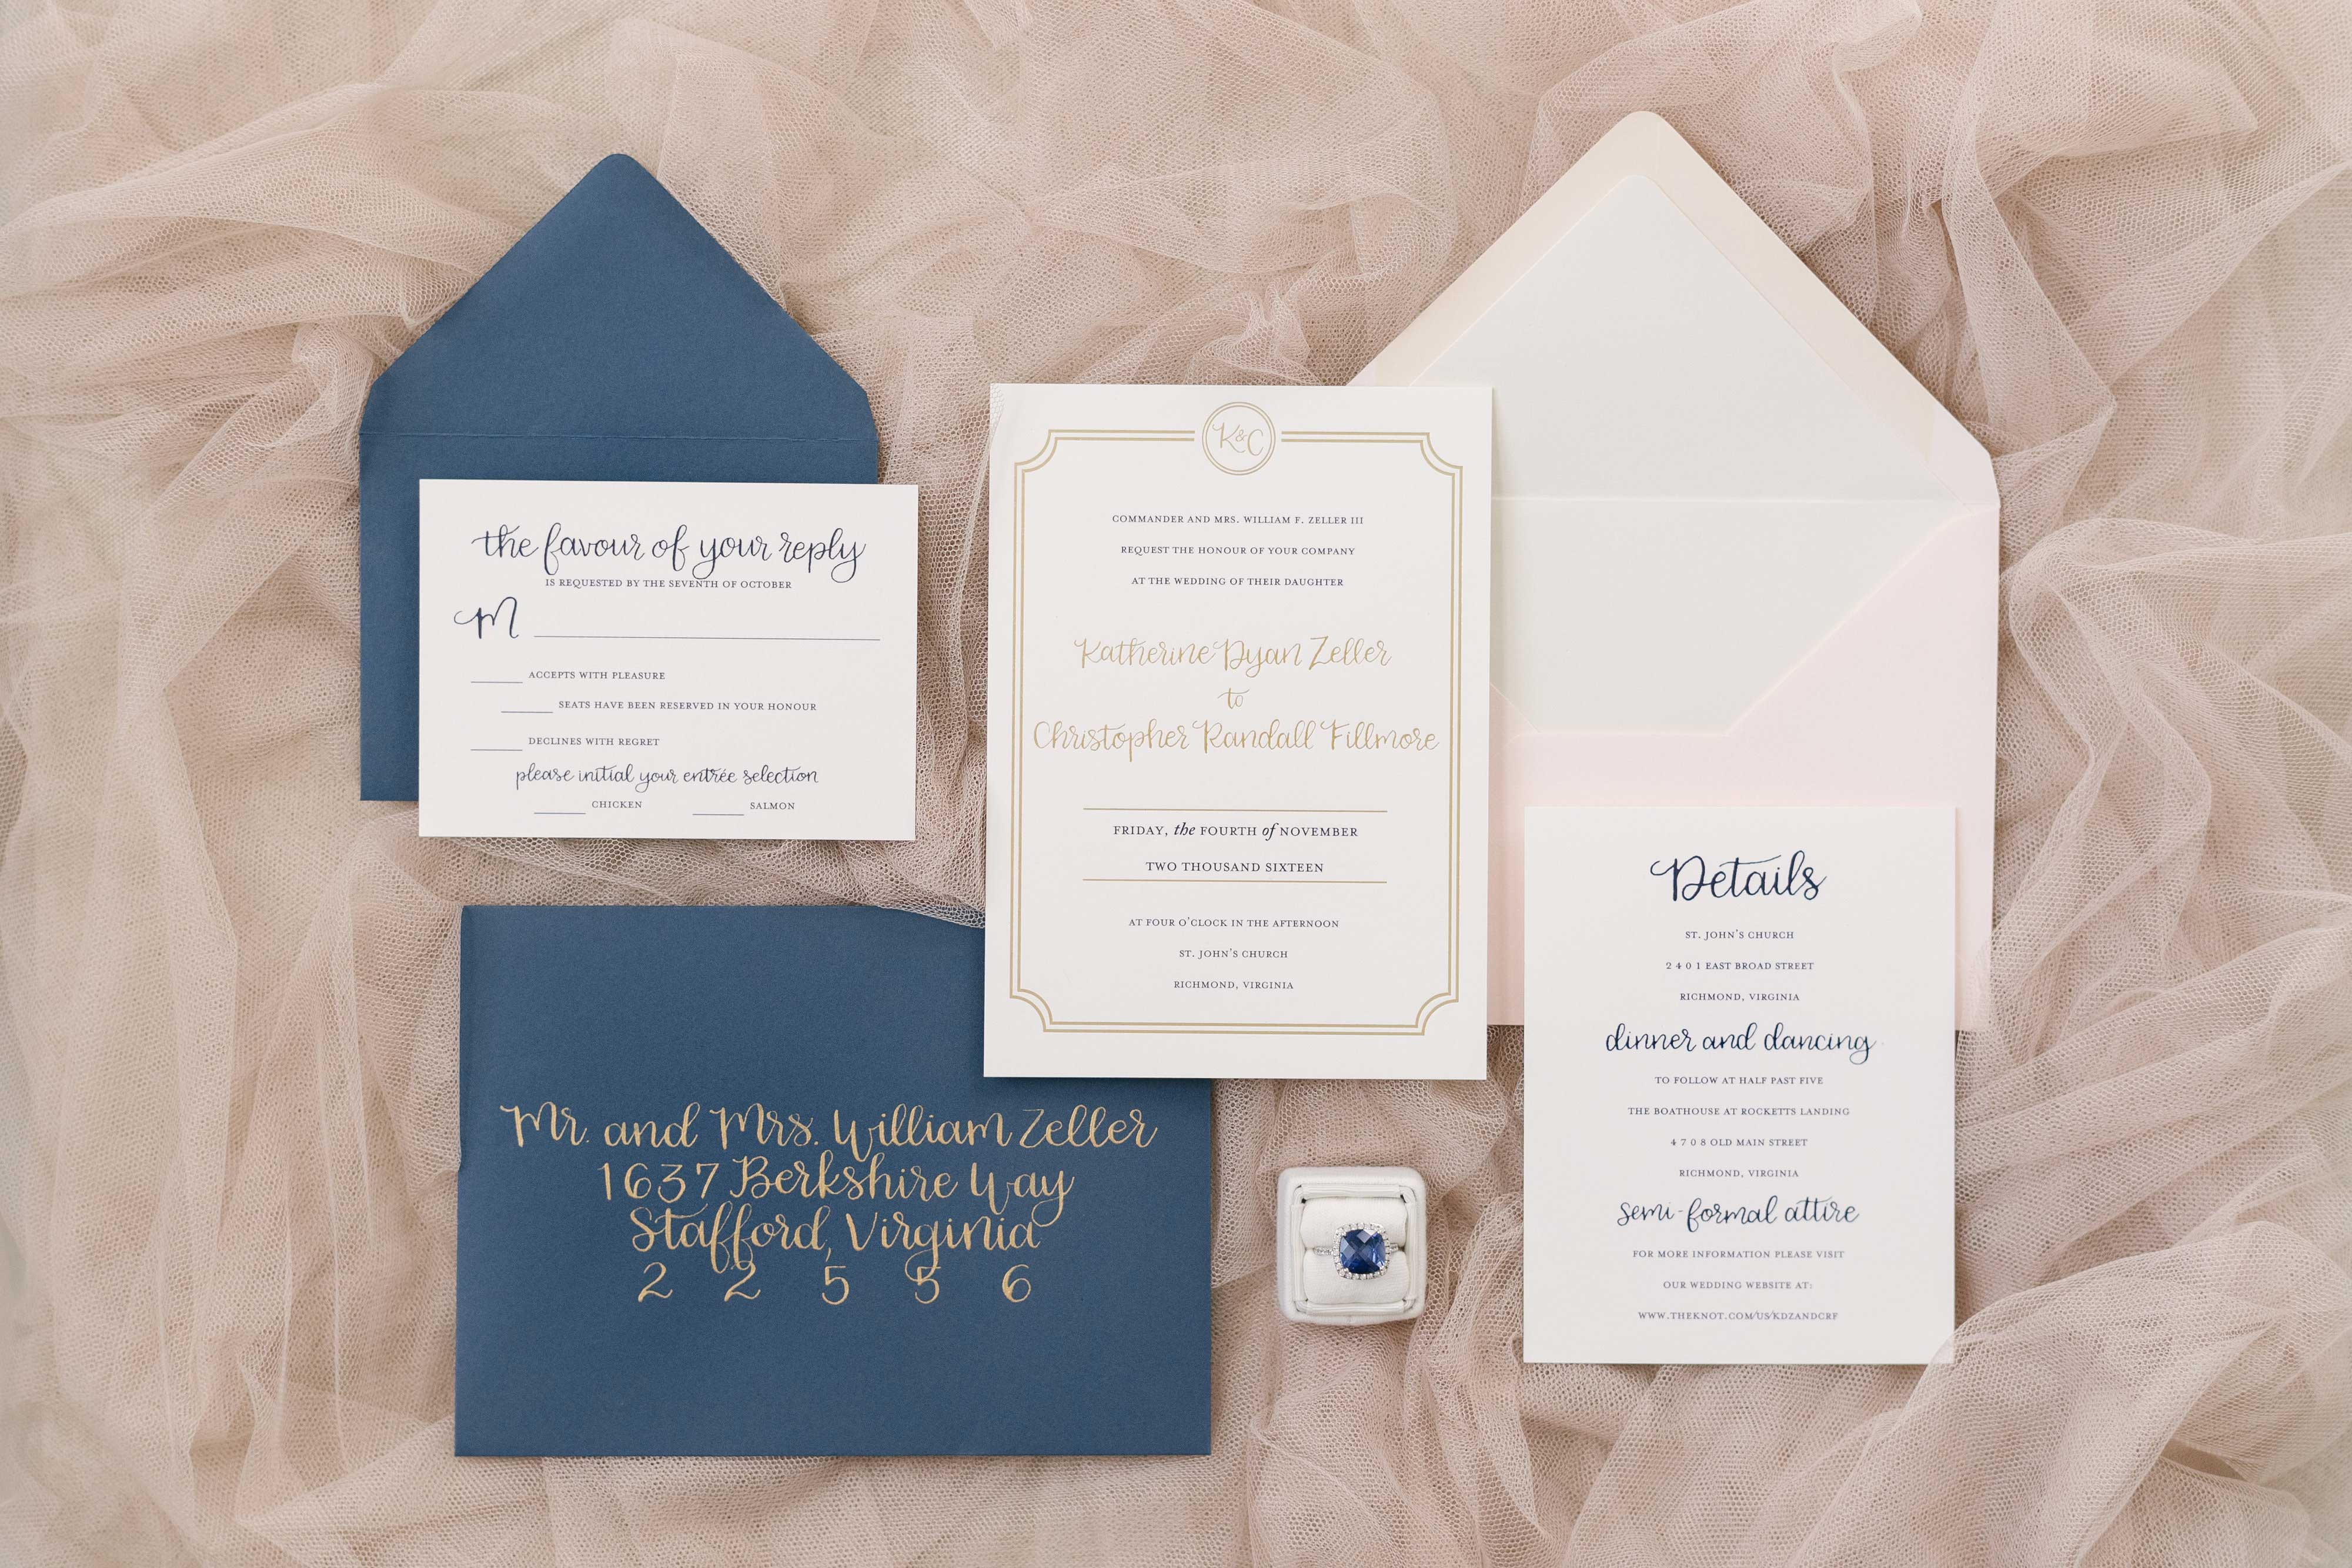 When Do You Send Out Wedding Invitations.Is It Okay To Send Out My Wedding Invitations And Save The Dates